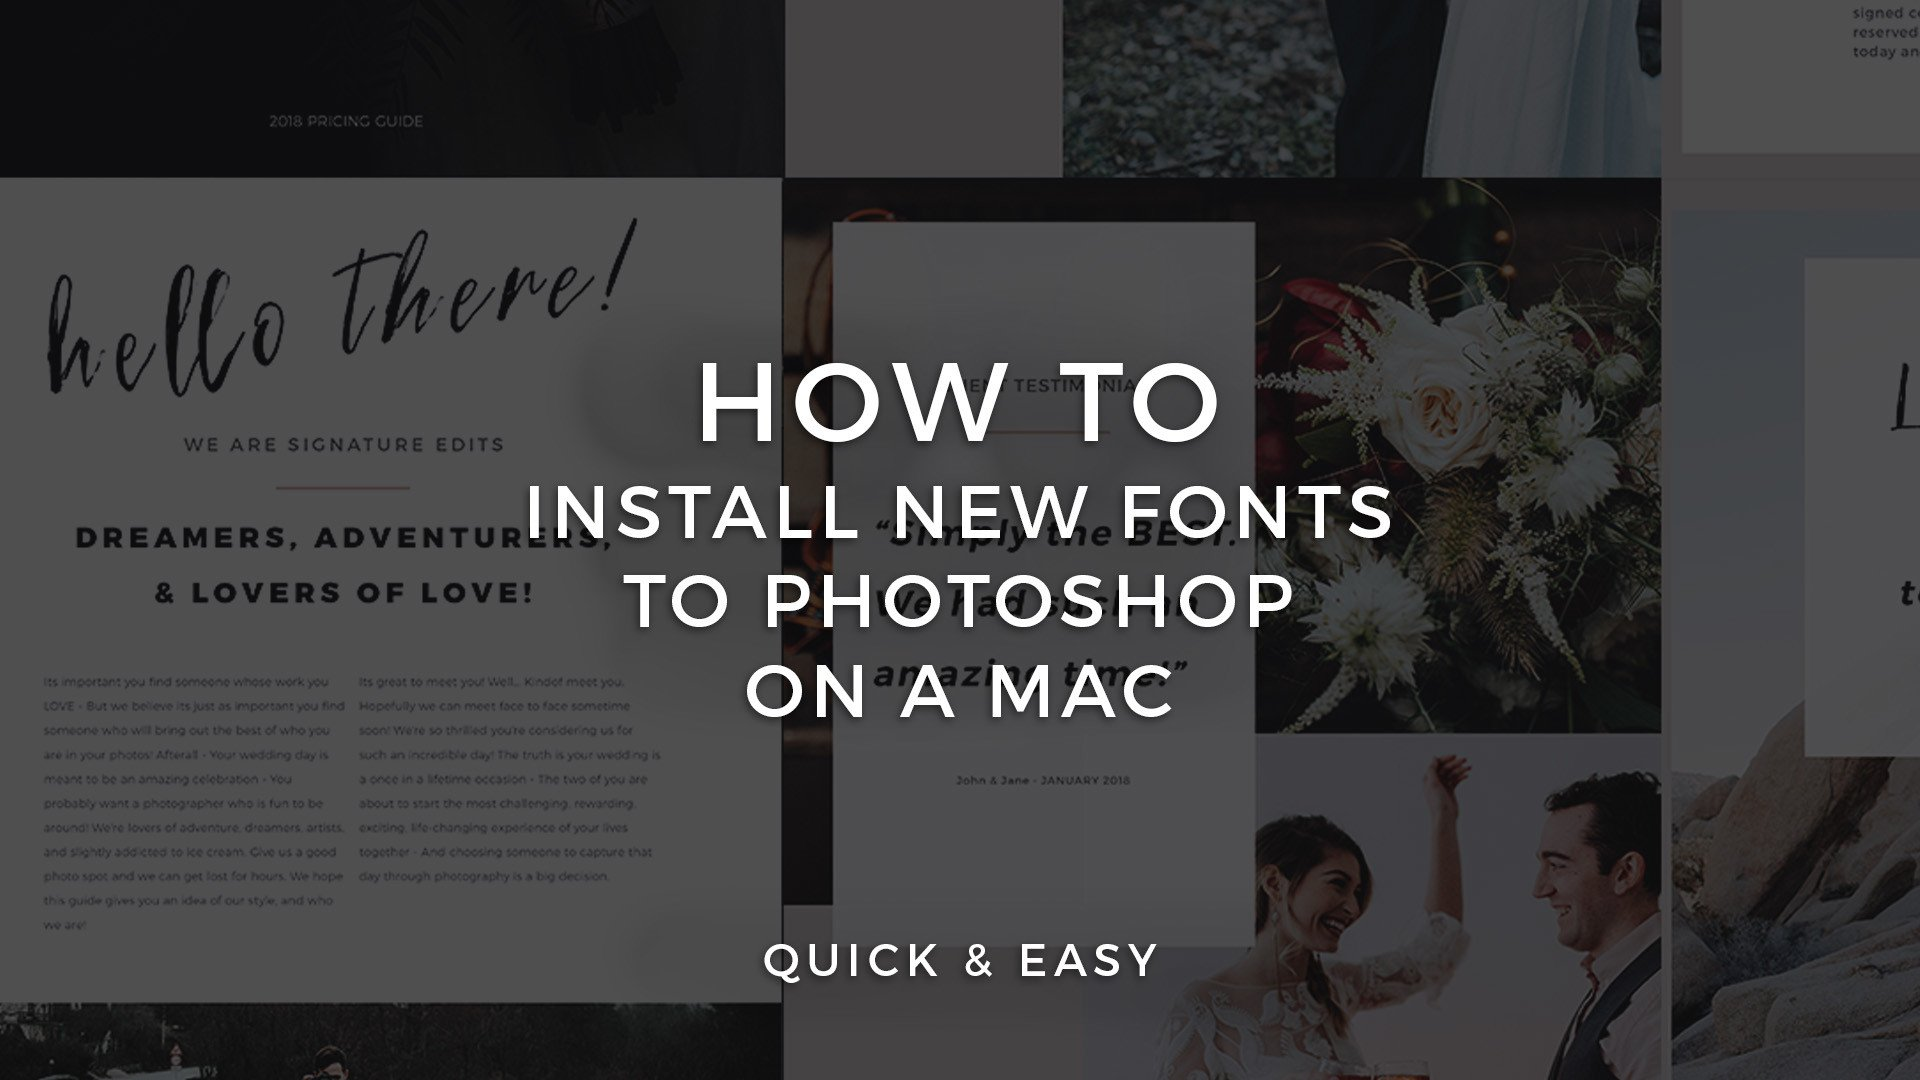 How to download and install new fonts to photoshop cc mac tutorial learn to download and install new fonts on mac and to add fonts for photoshop cc ccuart Images